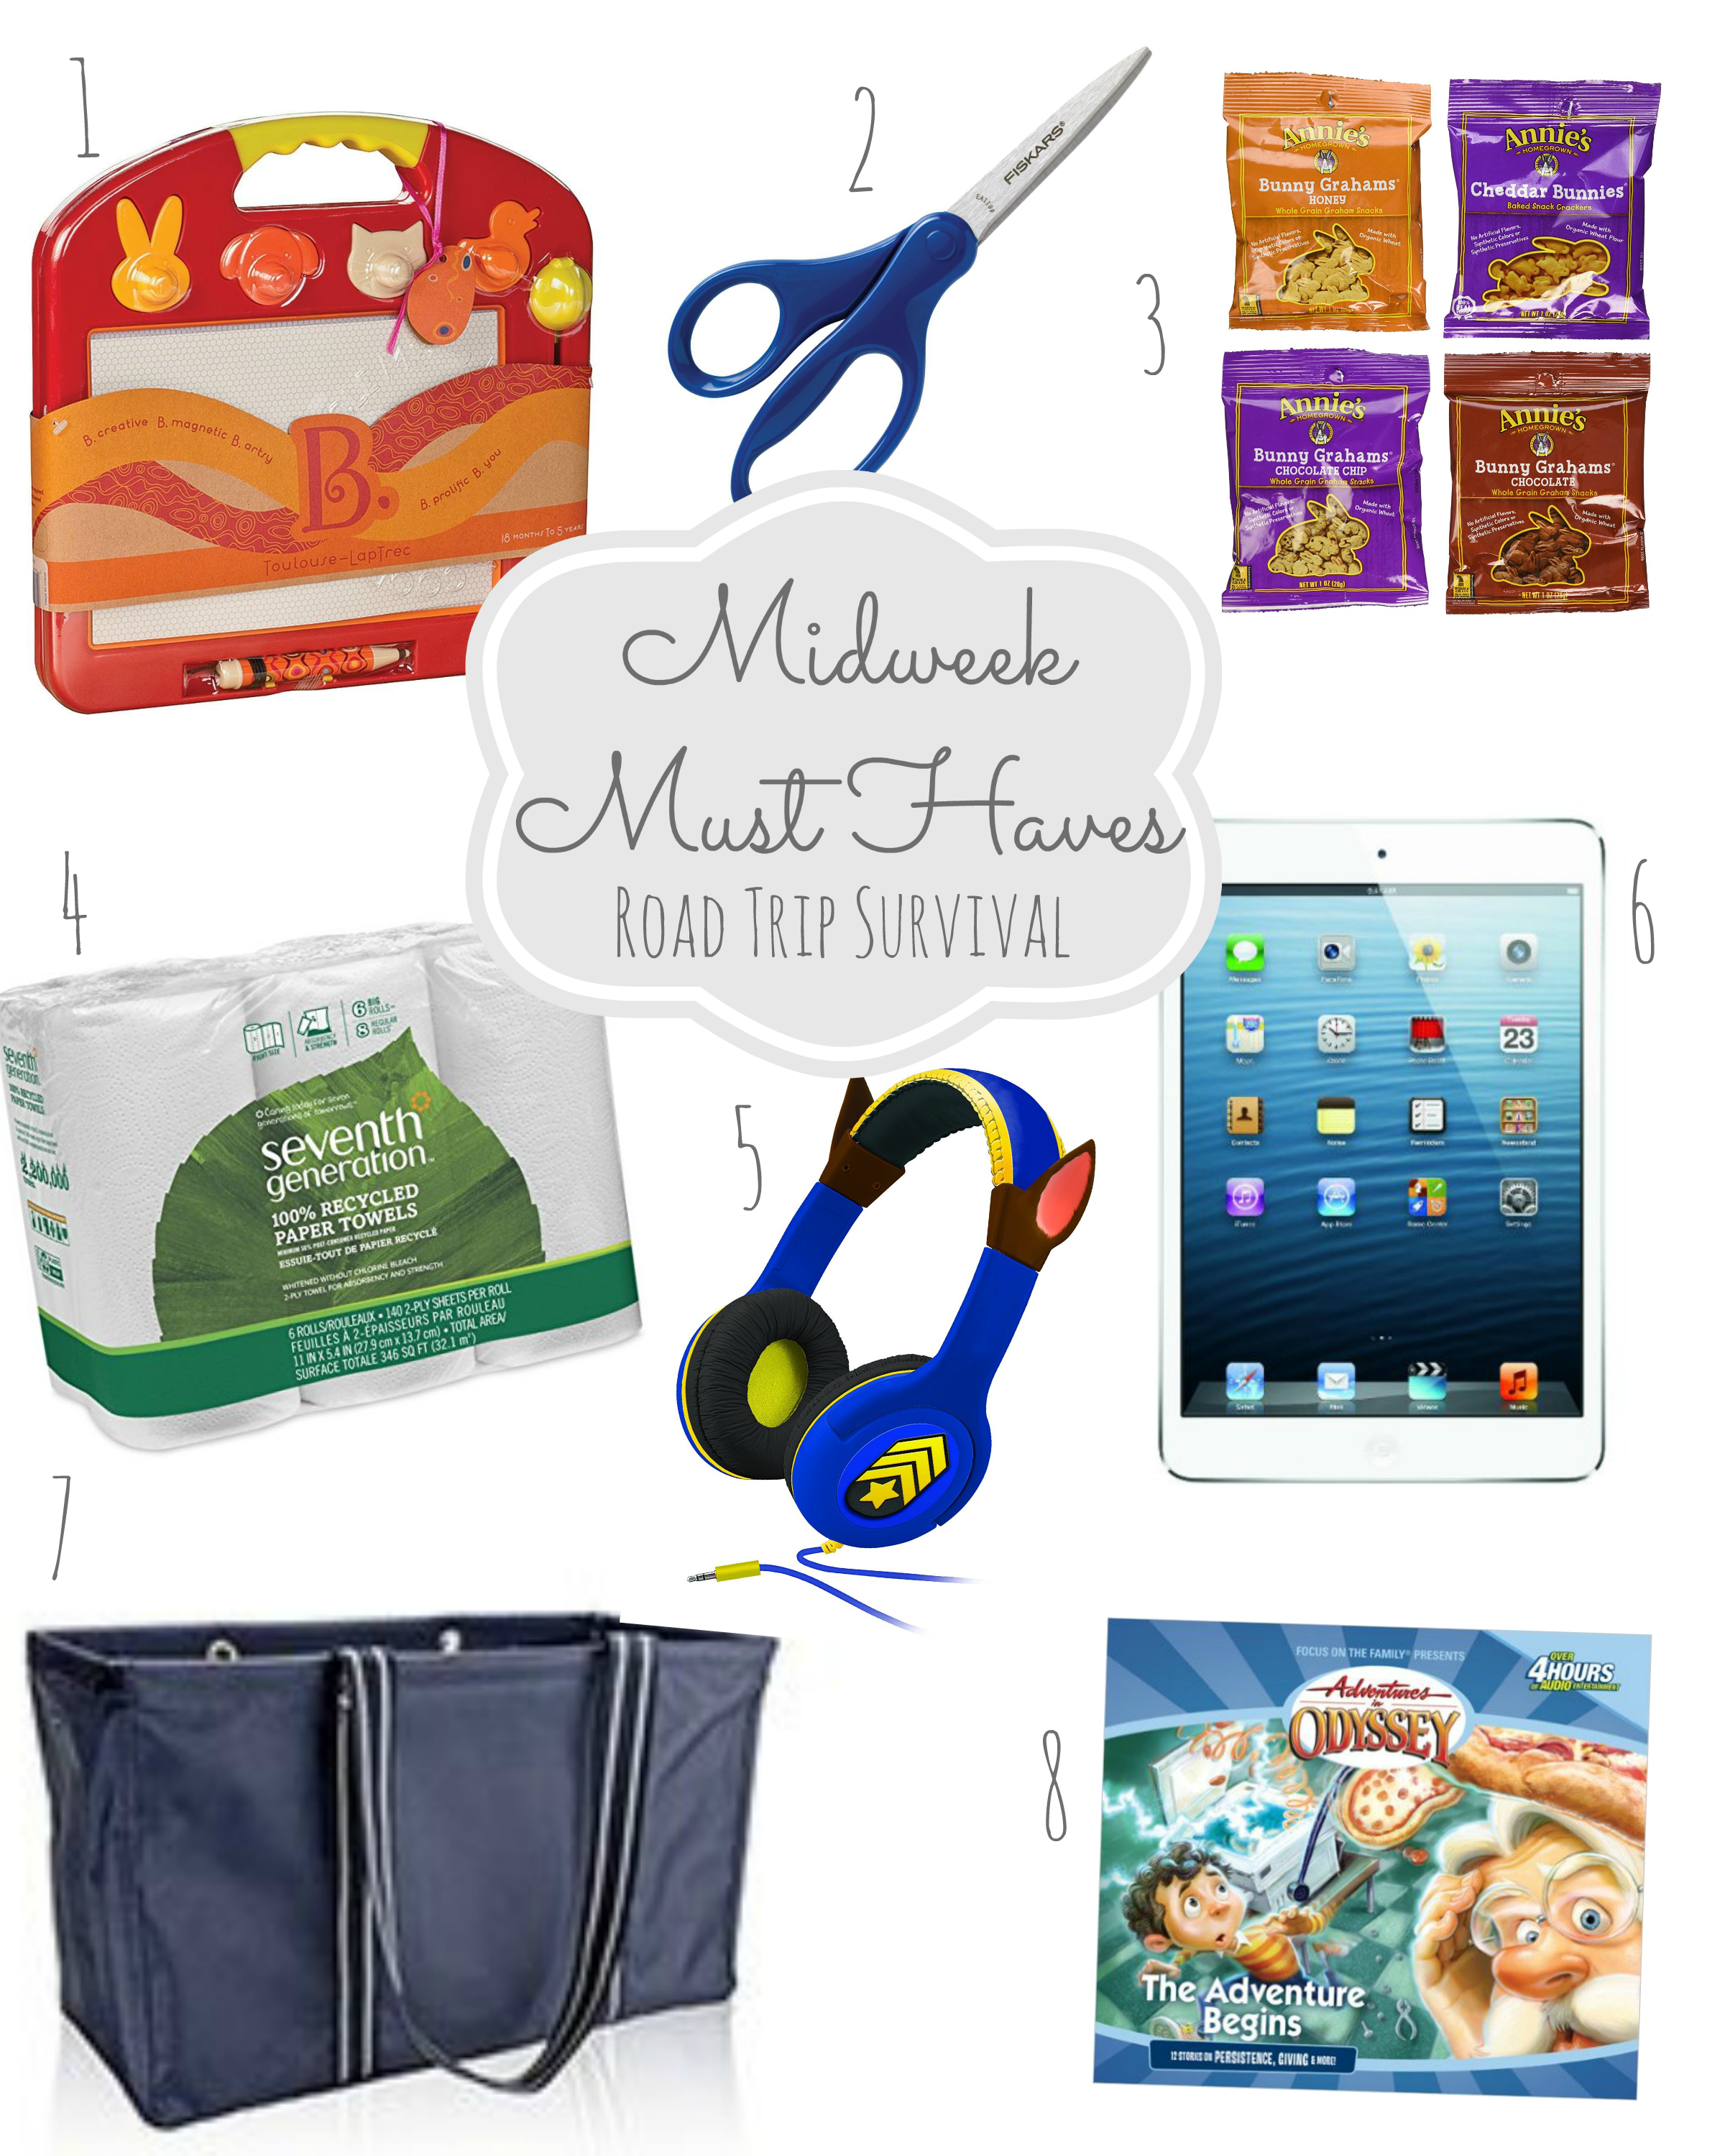 midweek must haves #5: road trip survival guide - from the family